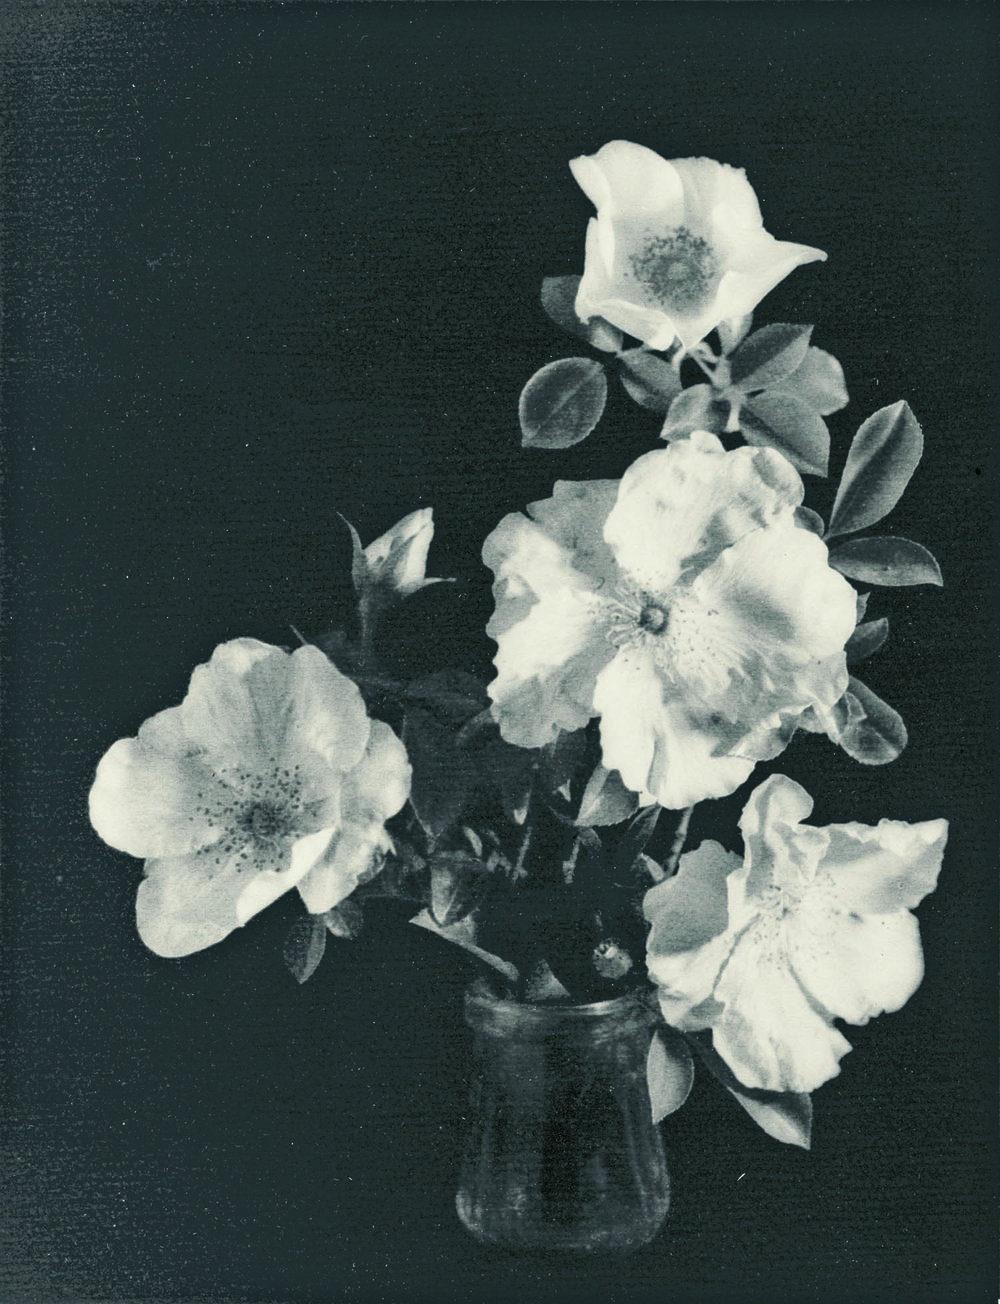 John MacAskill, Australia, 1890/91 ‑ 1974,  Roses,  c.1927, Australia, gelatin‑silver photograph, 36.2 x 28.0 cm (image & sheet). Purchased 1927, Art Gallery of South Australia, Adelaide. 2711Ph6